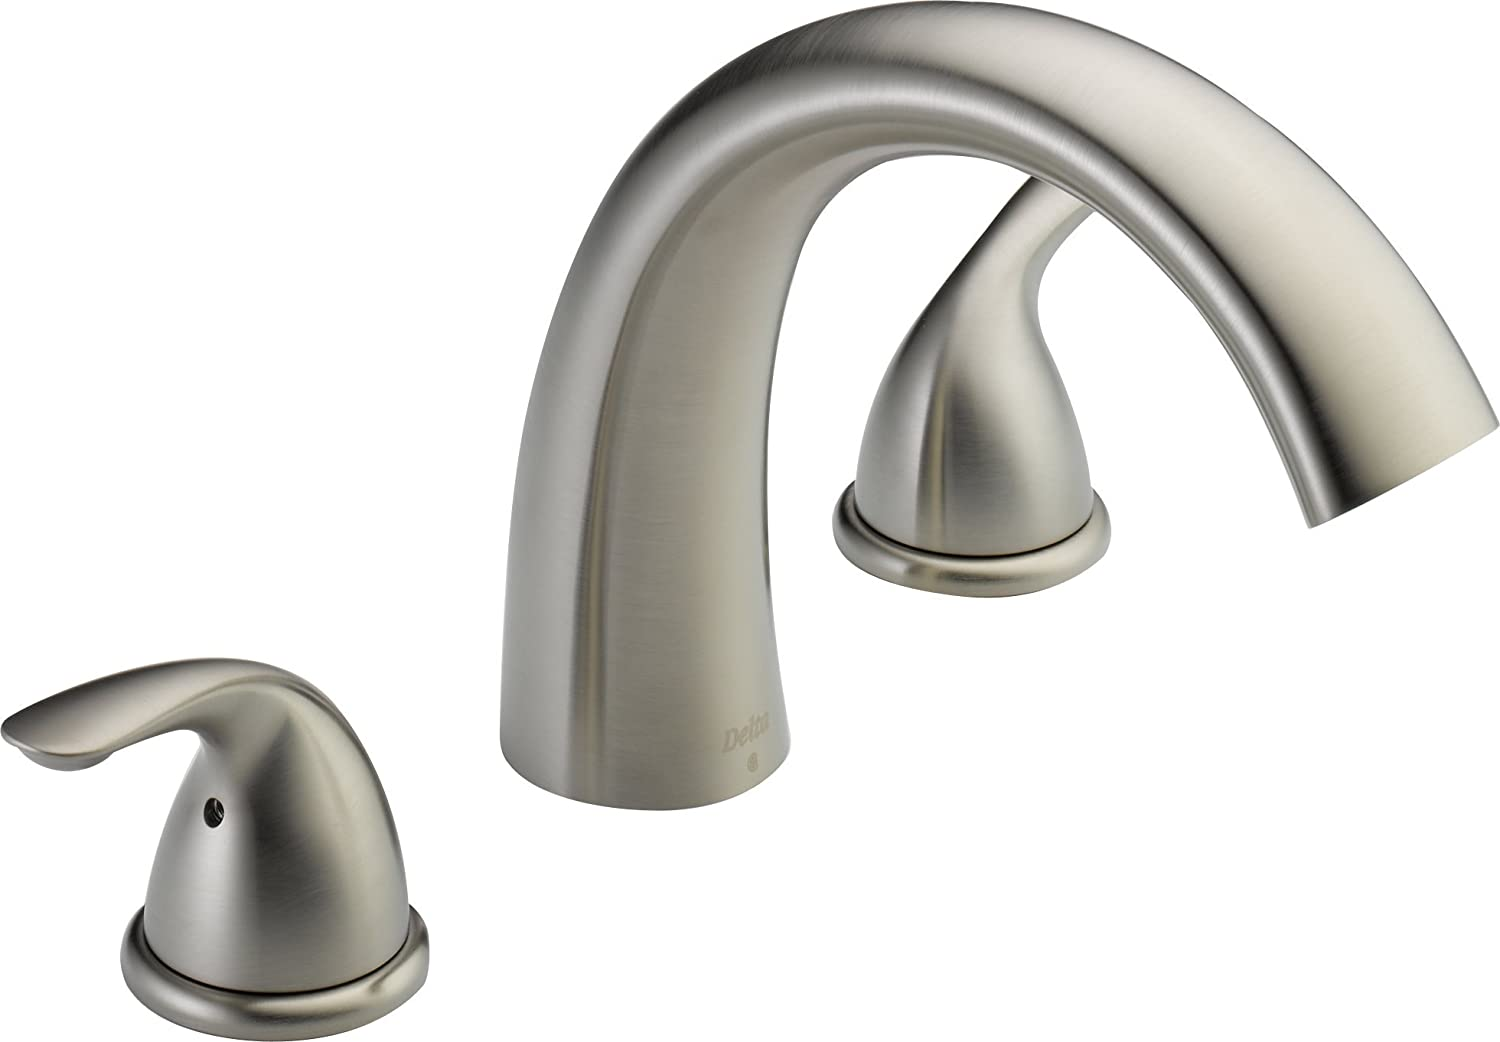 Delta t2705 roman tub trim stainless valve sold separately tub filler faucets amazon com